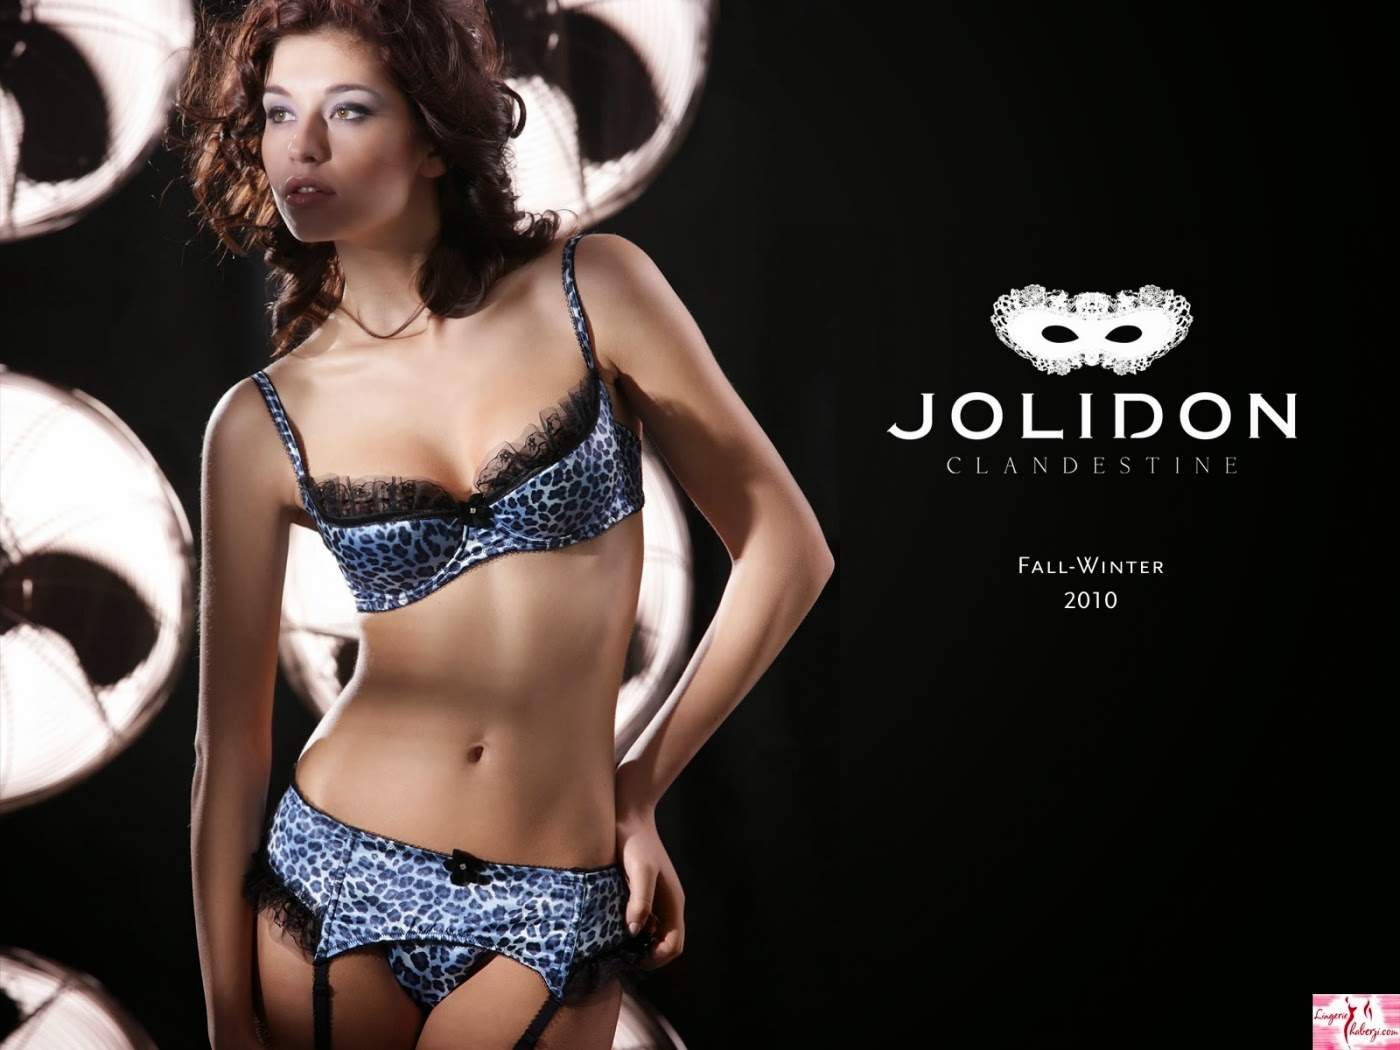 Jolidon is a Romanian lingerie and swim suit manufacturer, founded in 1993 in Cluj-Napoca. In 1993, an entrepreneur, Gabriel Cîrlig, identifies on the Romanian market an after '89 two types of products, Founded: 1993, Cluj-Napoca, Romania.